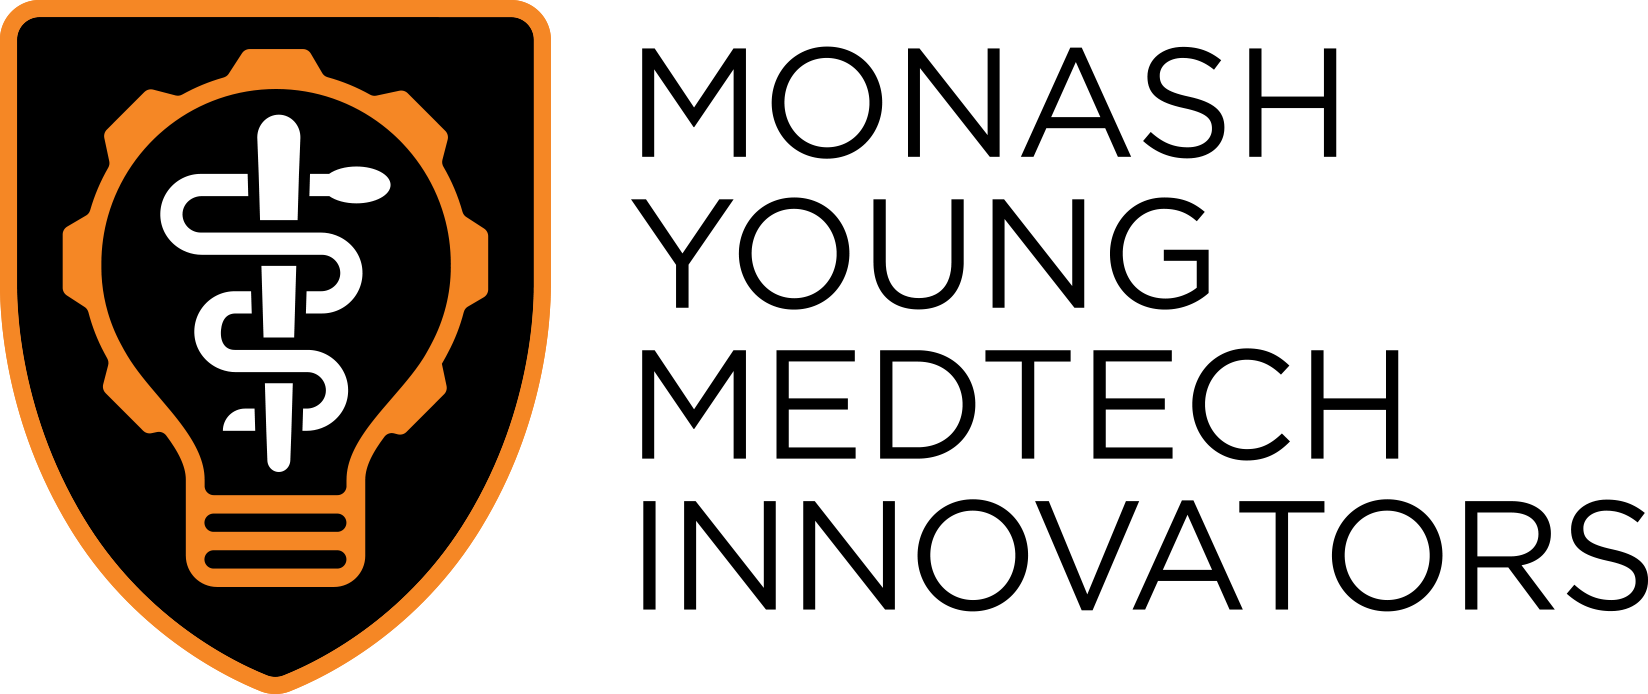 Who is behind MedHack? - MYMI- we're an interdisciplinary community of students and early career researchers from diverse academic backgrounds, determined to achieve positive social impact through biomedical innovation.